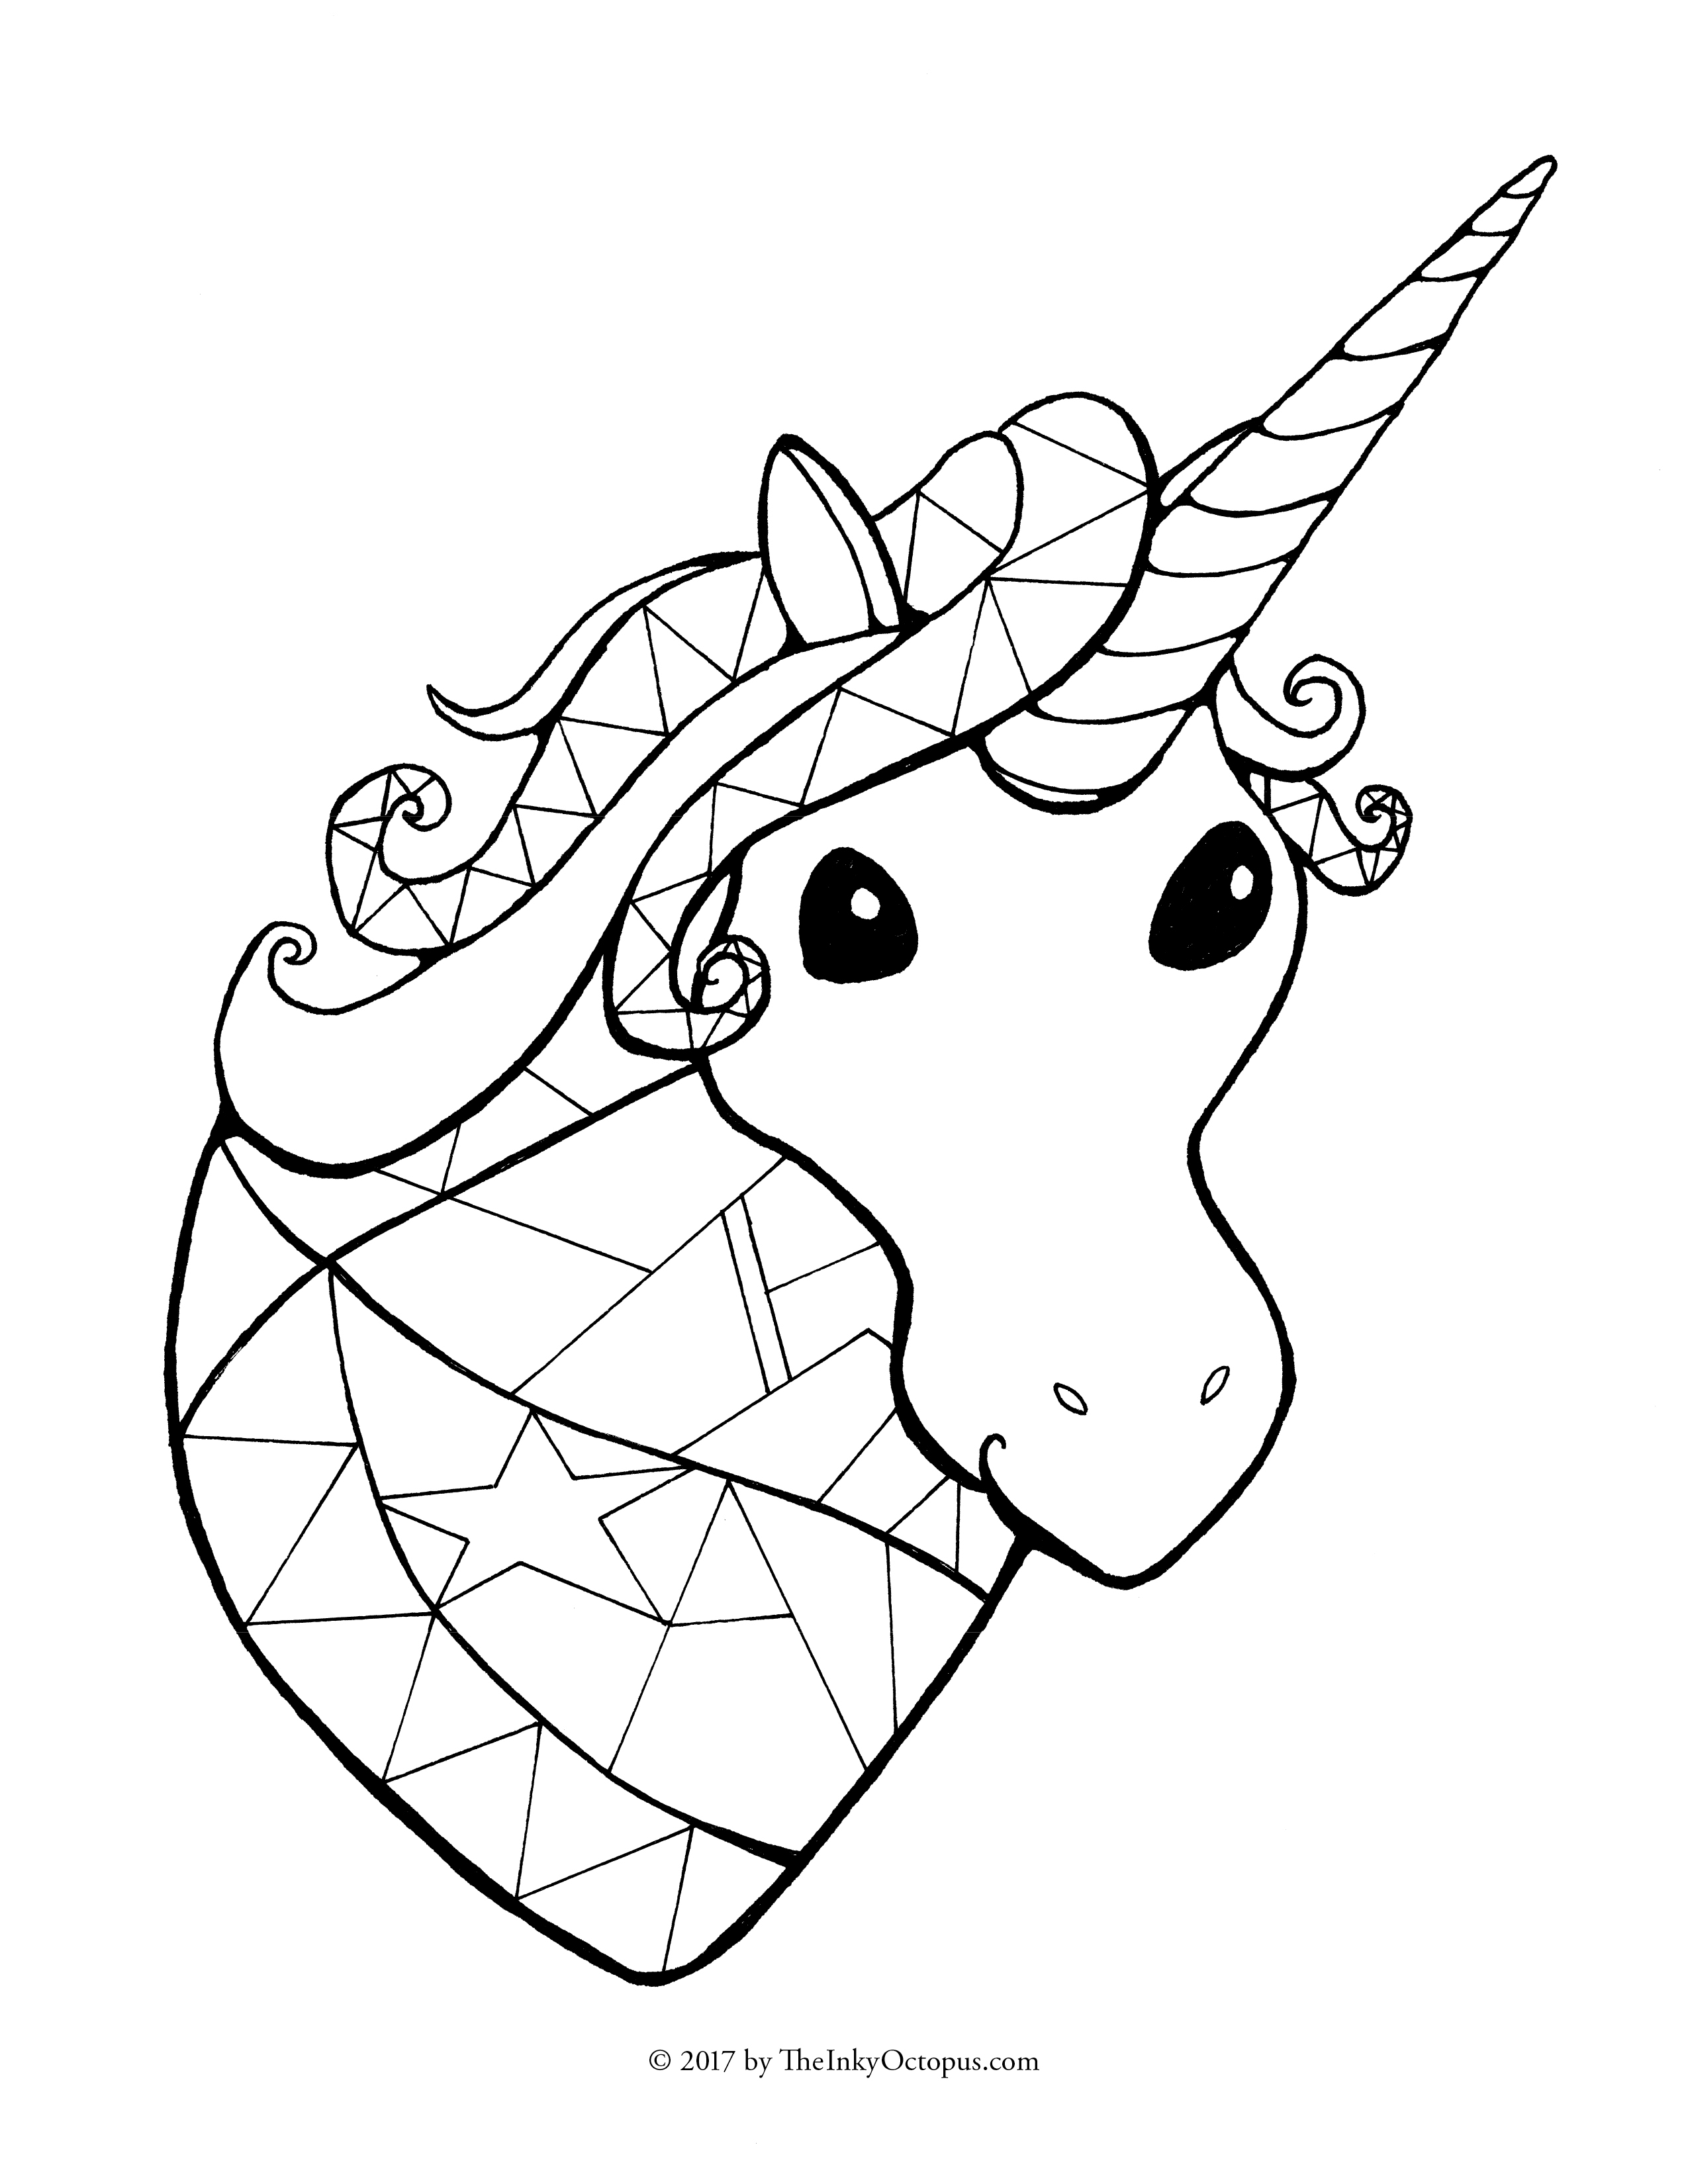 Unicorn family coloring pages - Download File